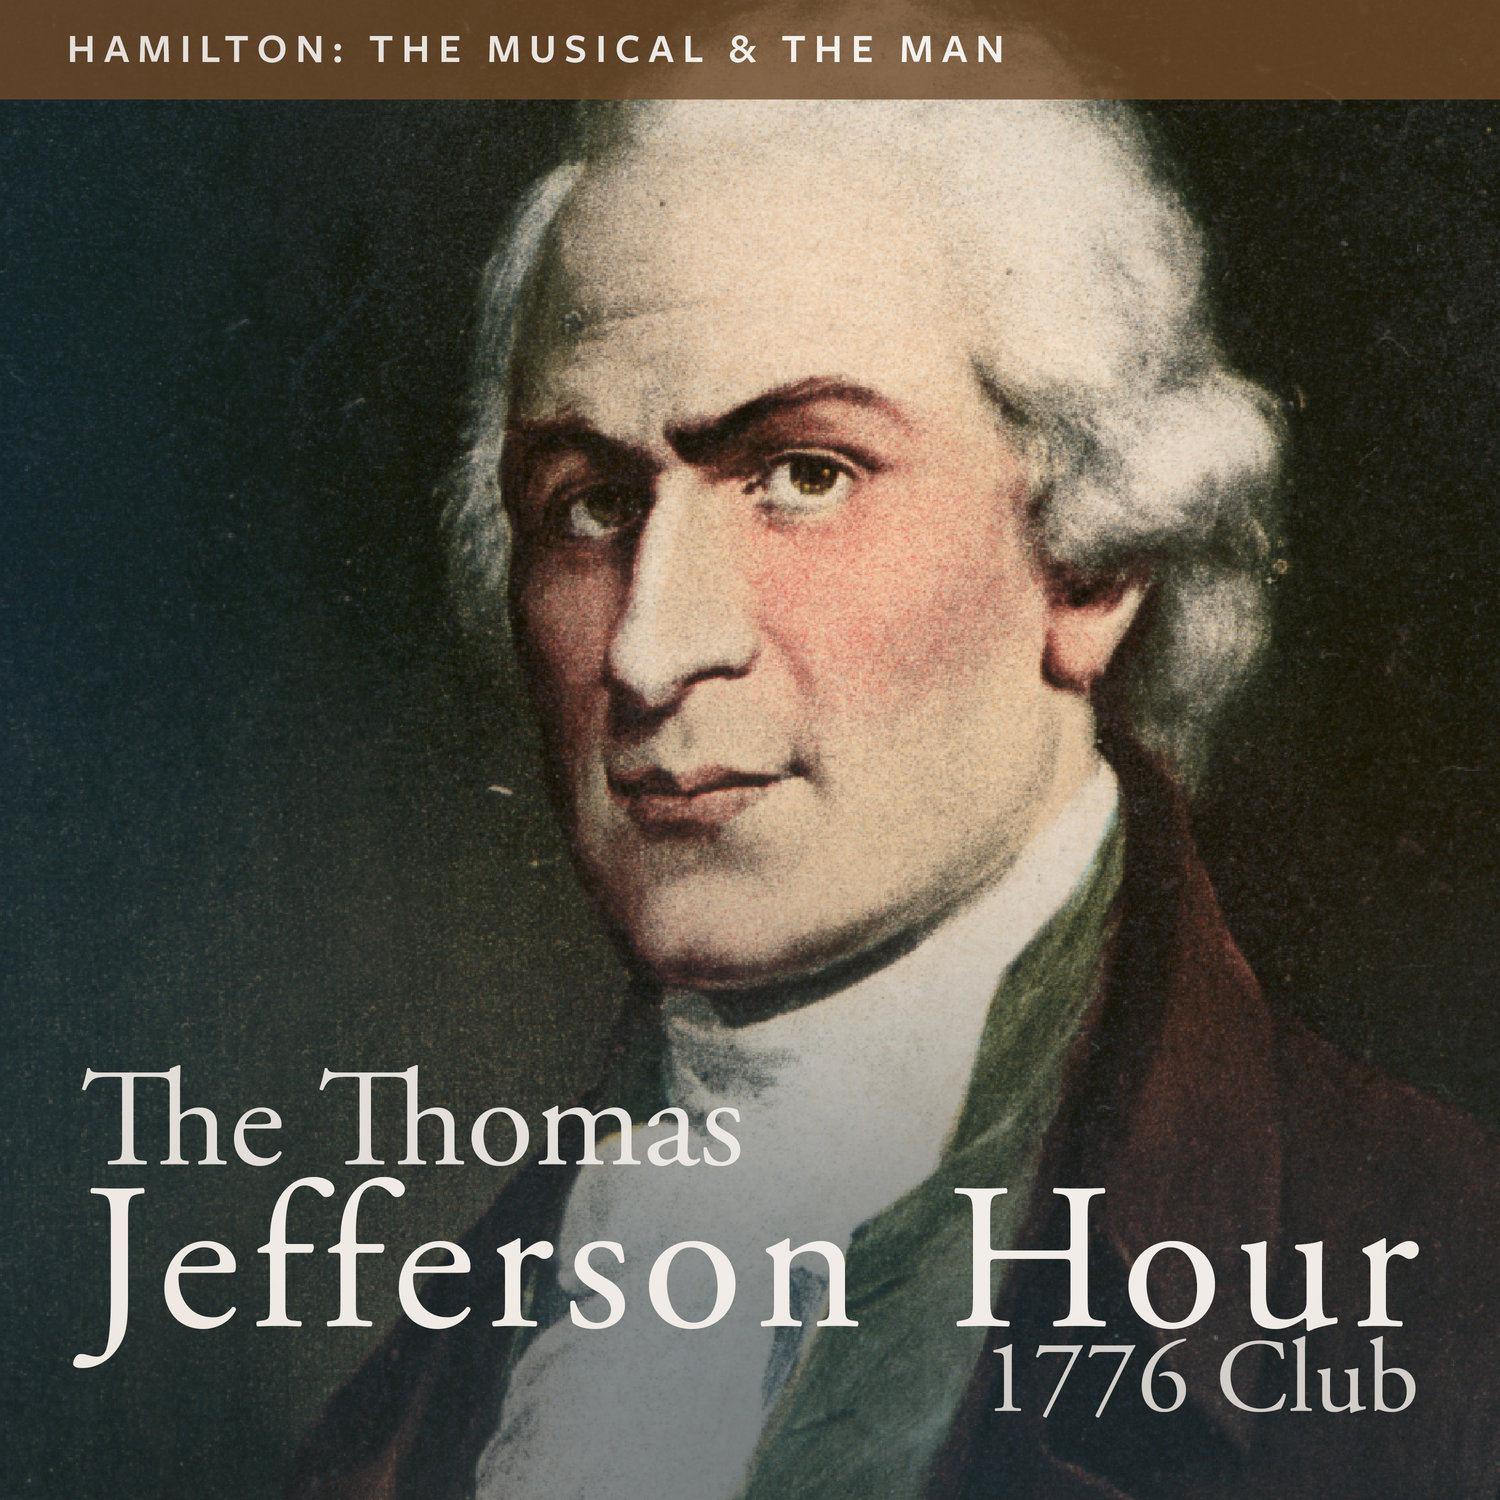 hamilton the musical and the man the thomas jefferson hour hamilton the musical and the man